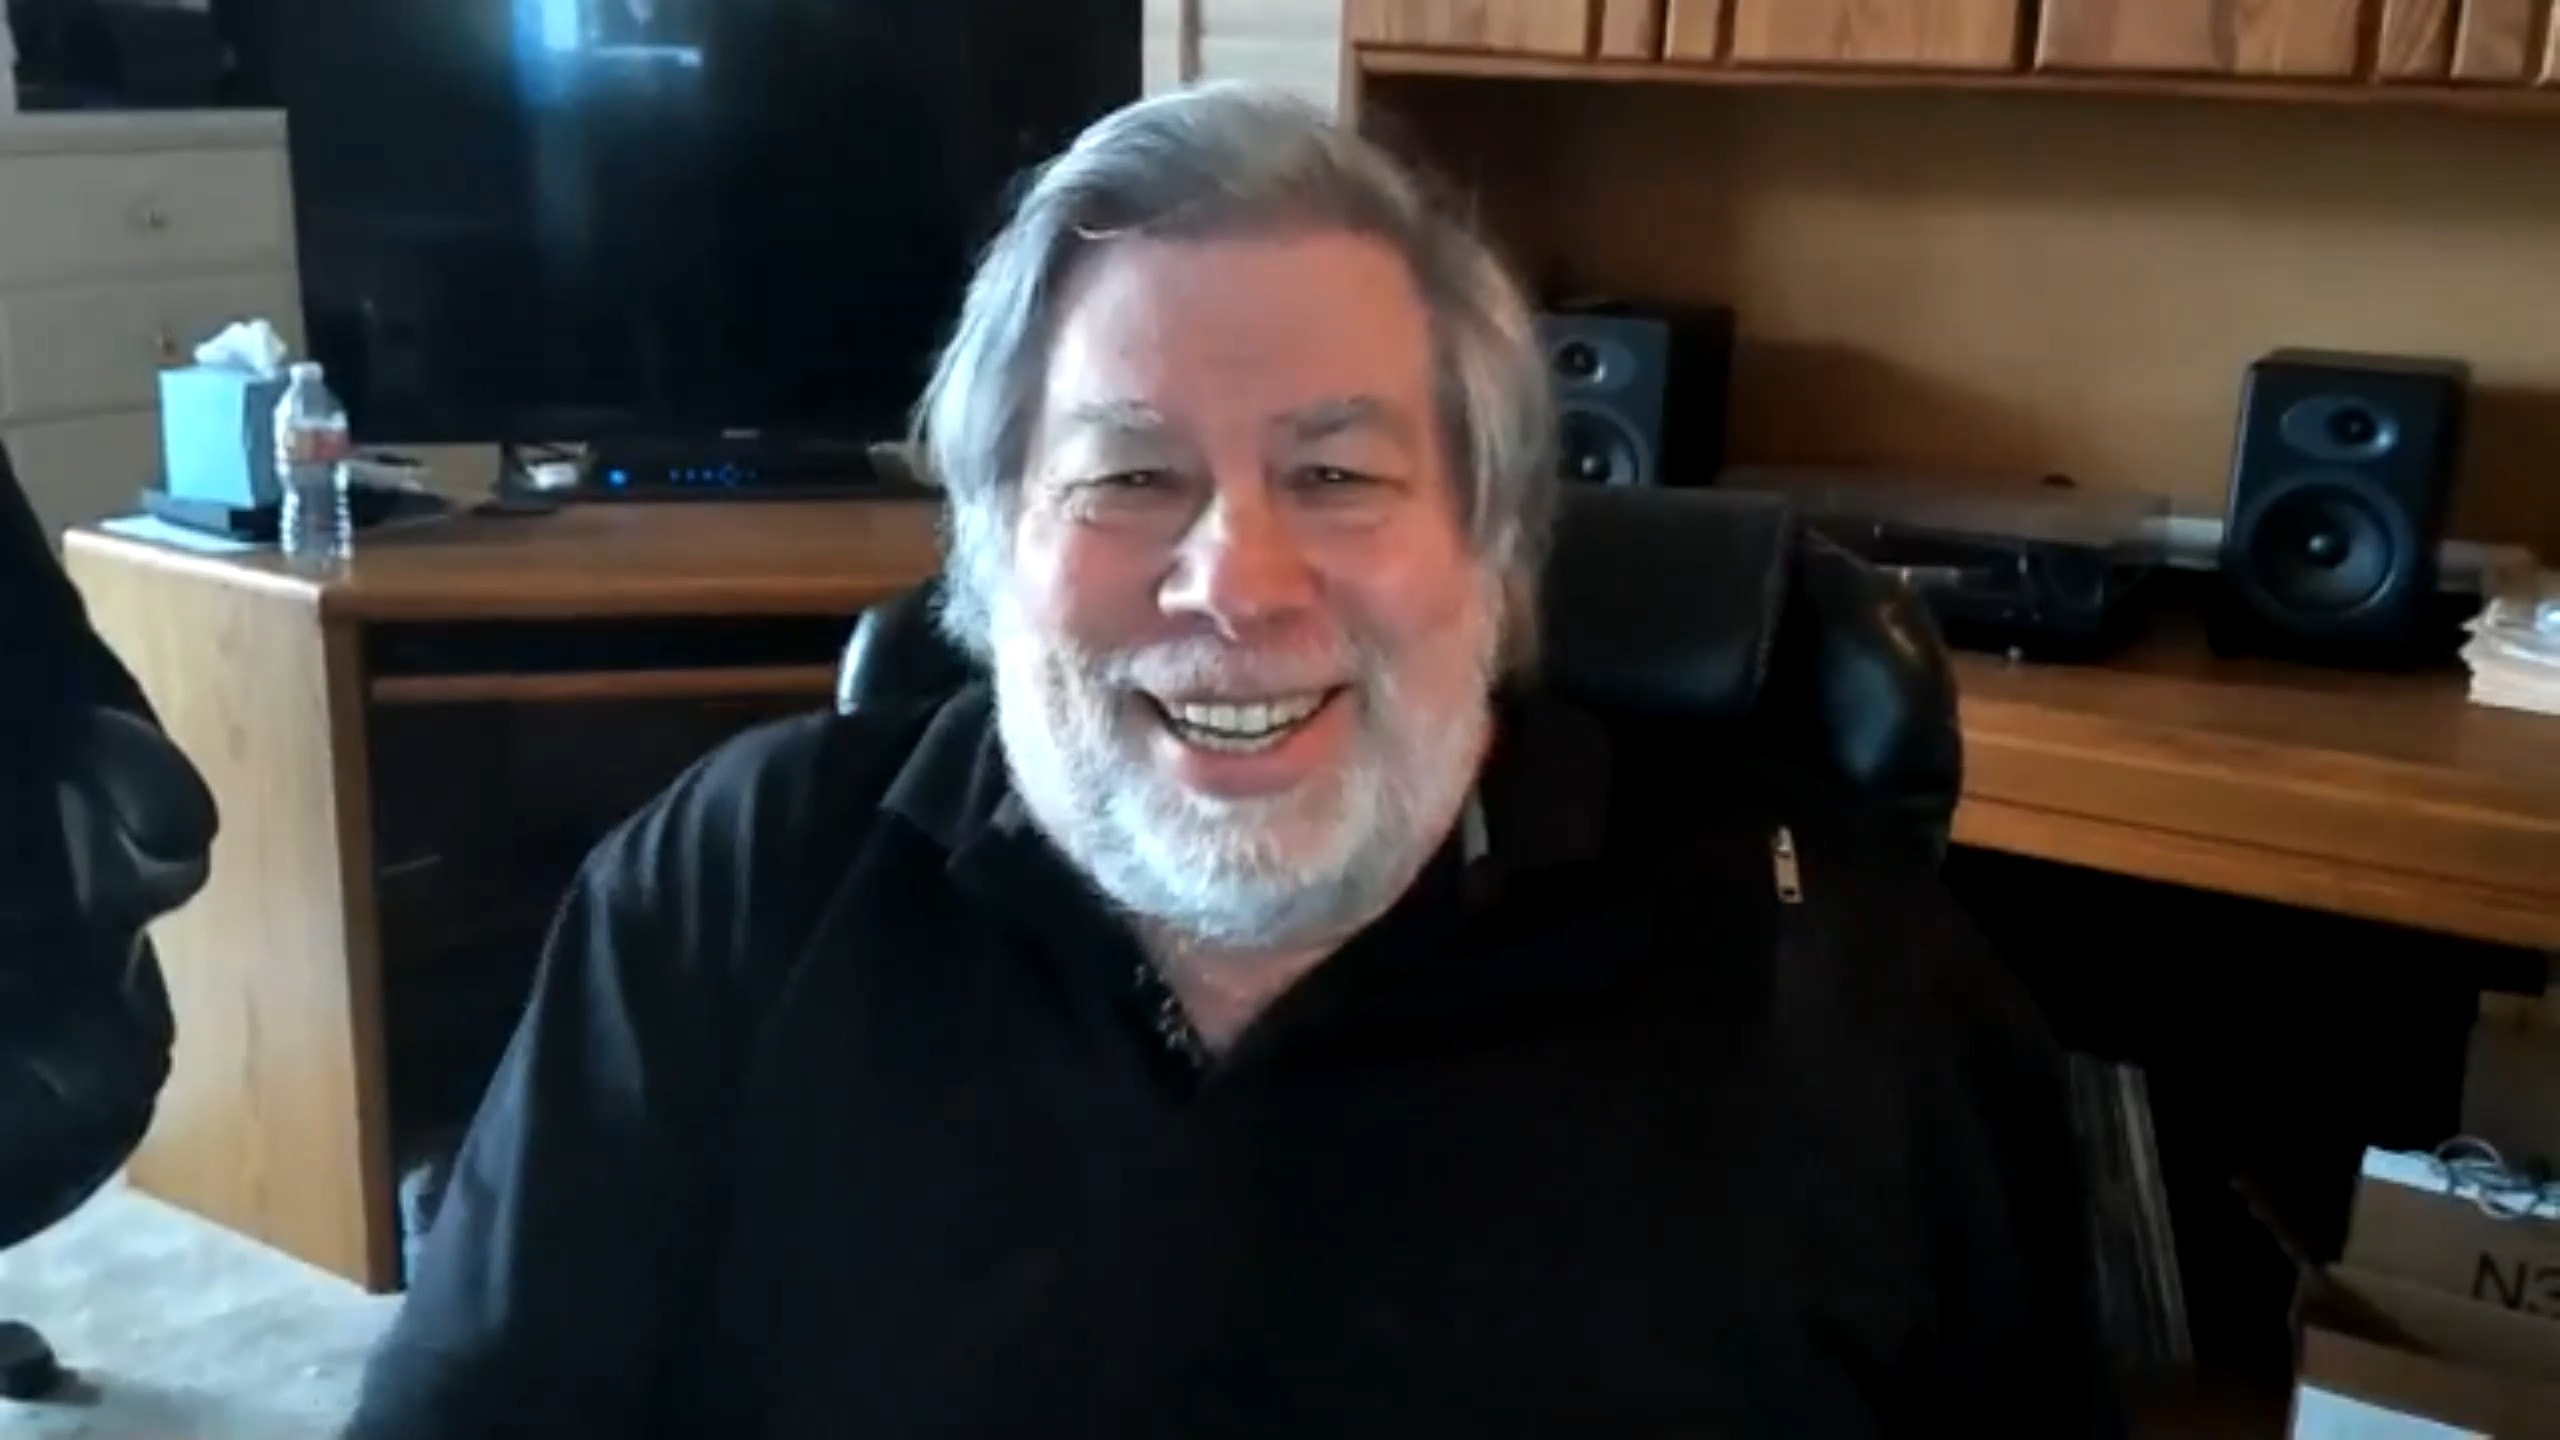 Guess who showed up as a surprise attendee at the online Newton conference: Steve Wozniak!